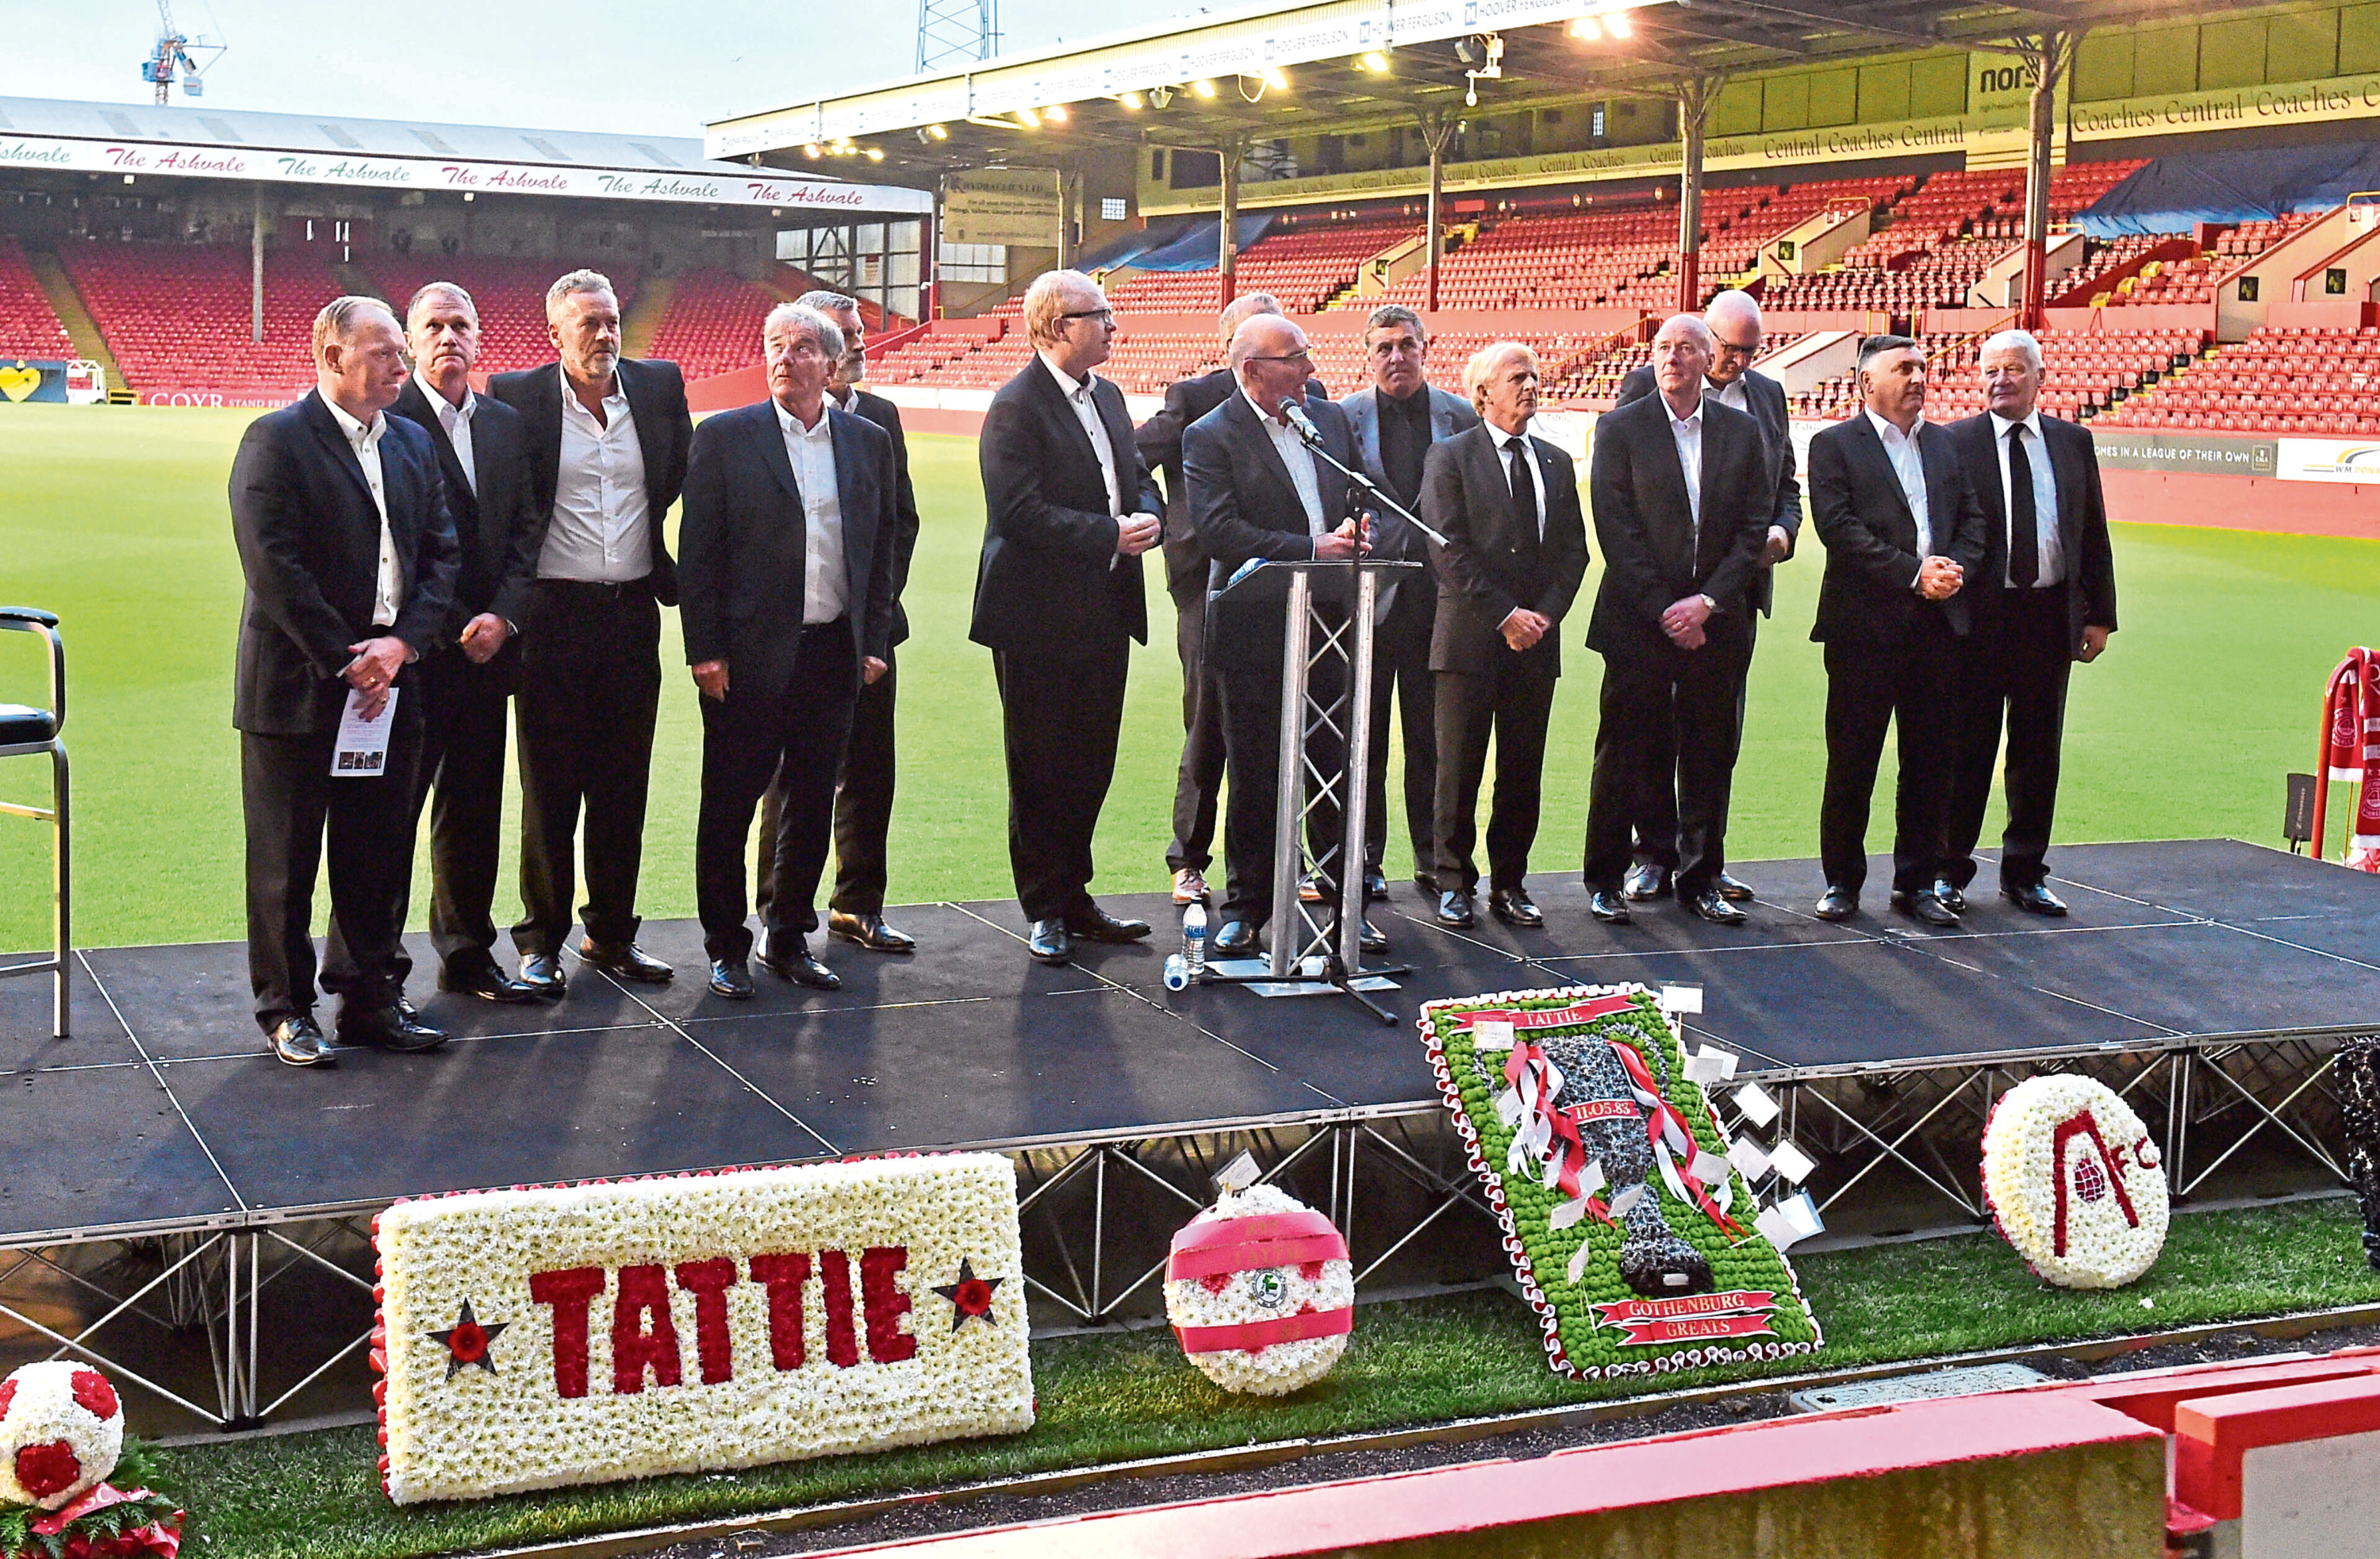 Willie Miller with the rest of the famous Gothenburg Greats.